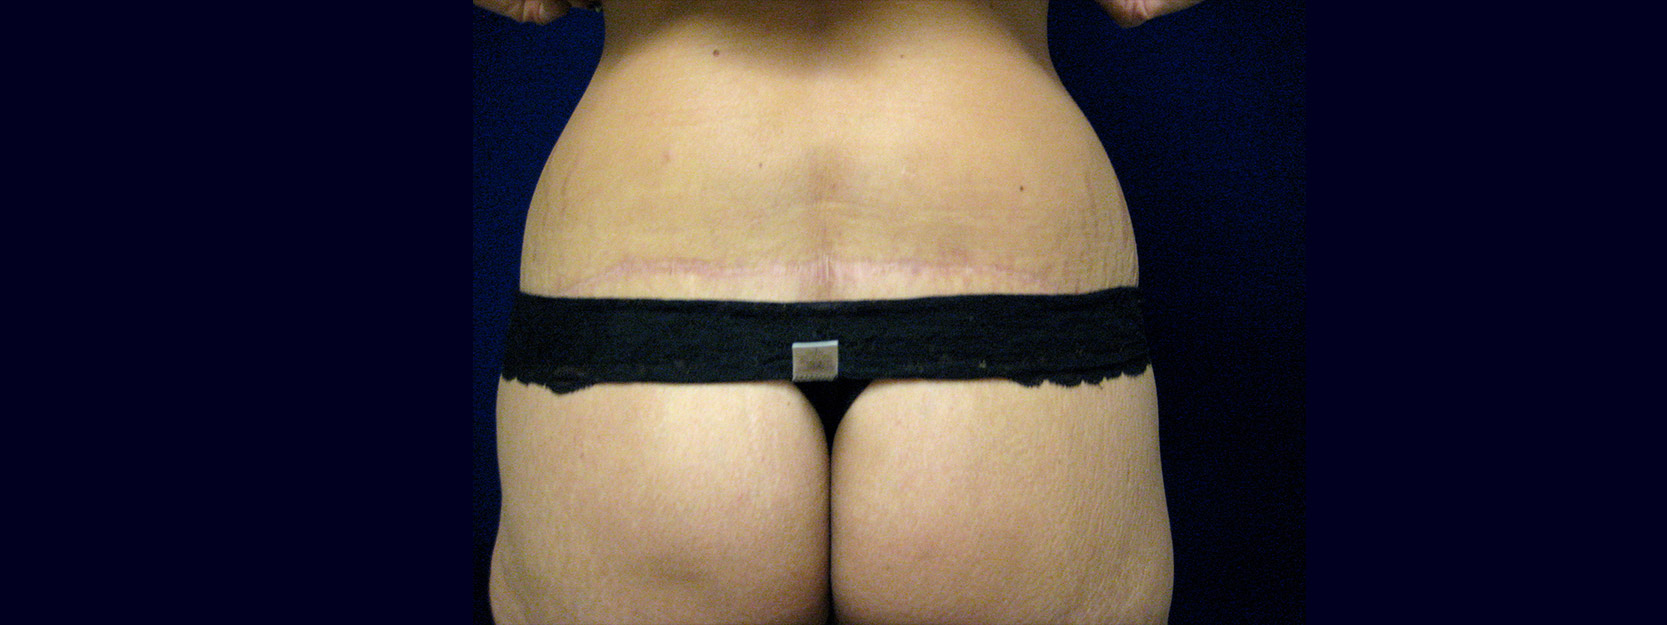 Back View After - Circumferential Abdominoplasty After Massive Weight Loss